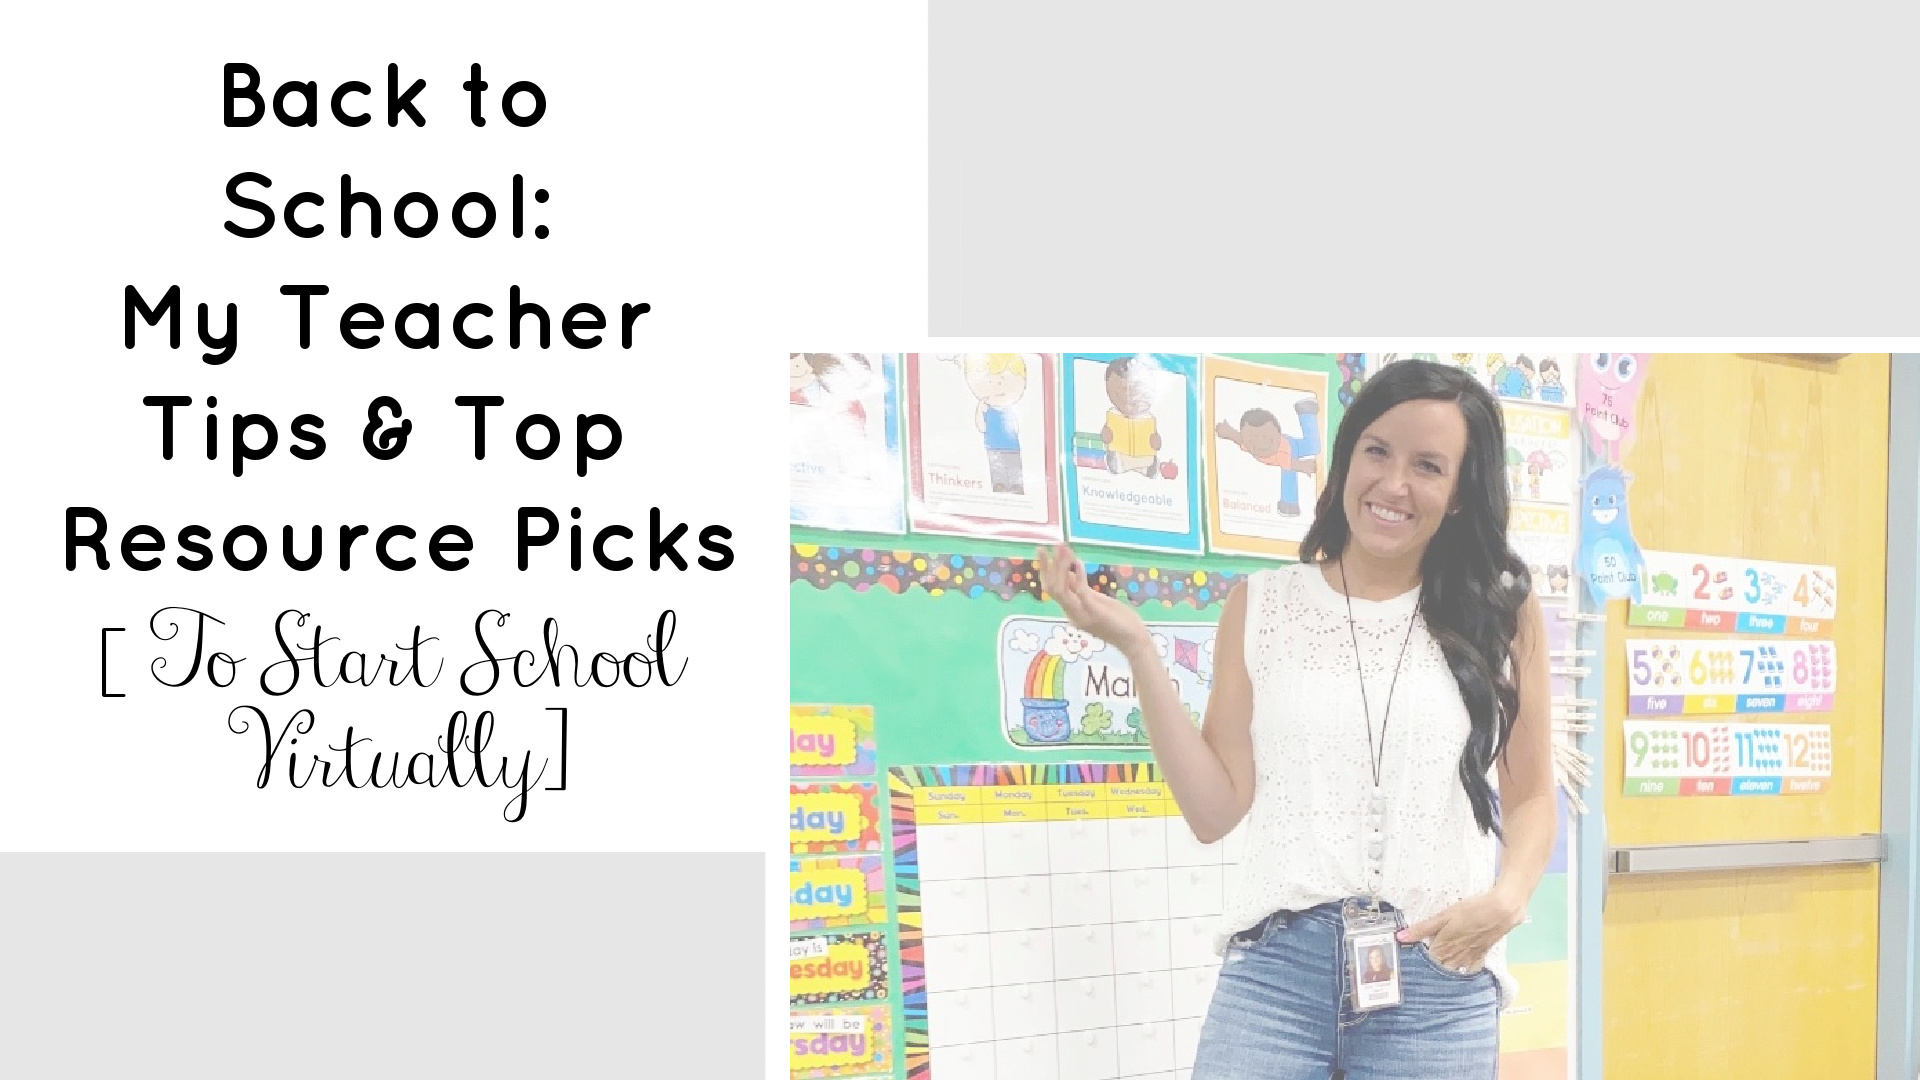 Back to School | Virtual Teaching | Week 1 Ideas | Teacherfashionista | Jules